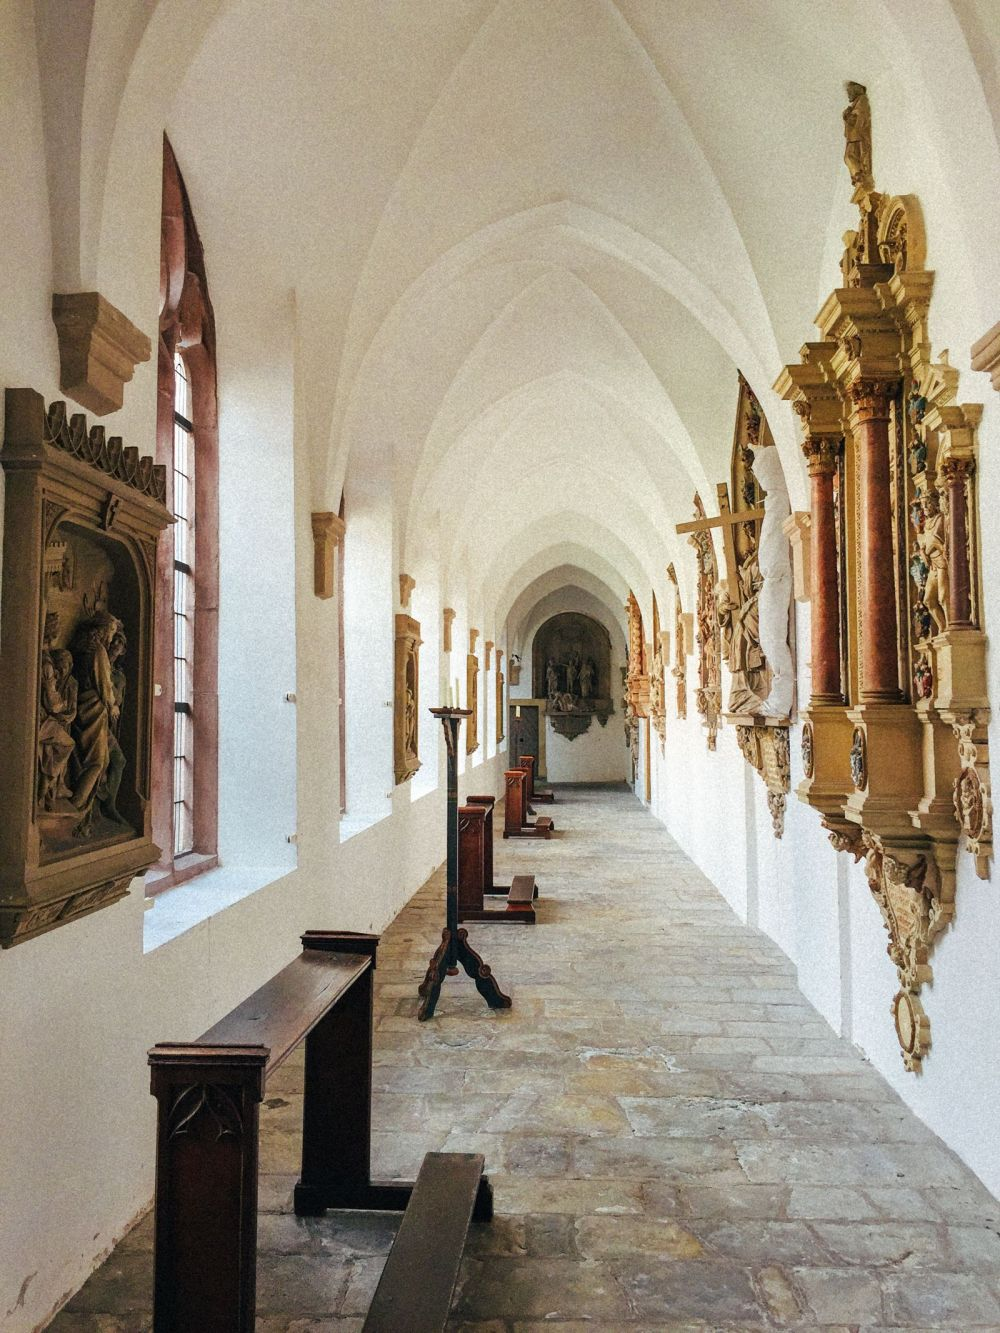 Have You Ever Heard Of This Little Place In Germany Called Paderborn? (31)